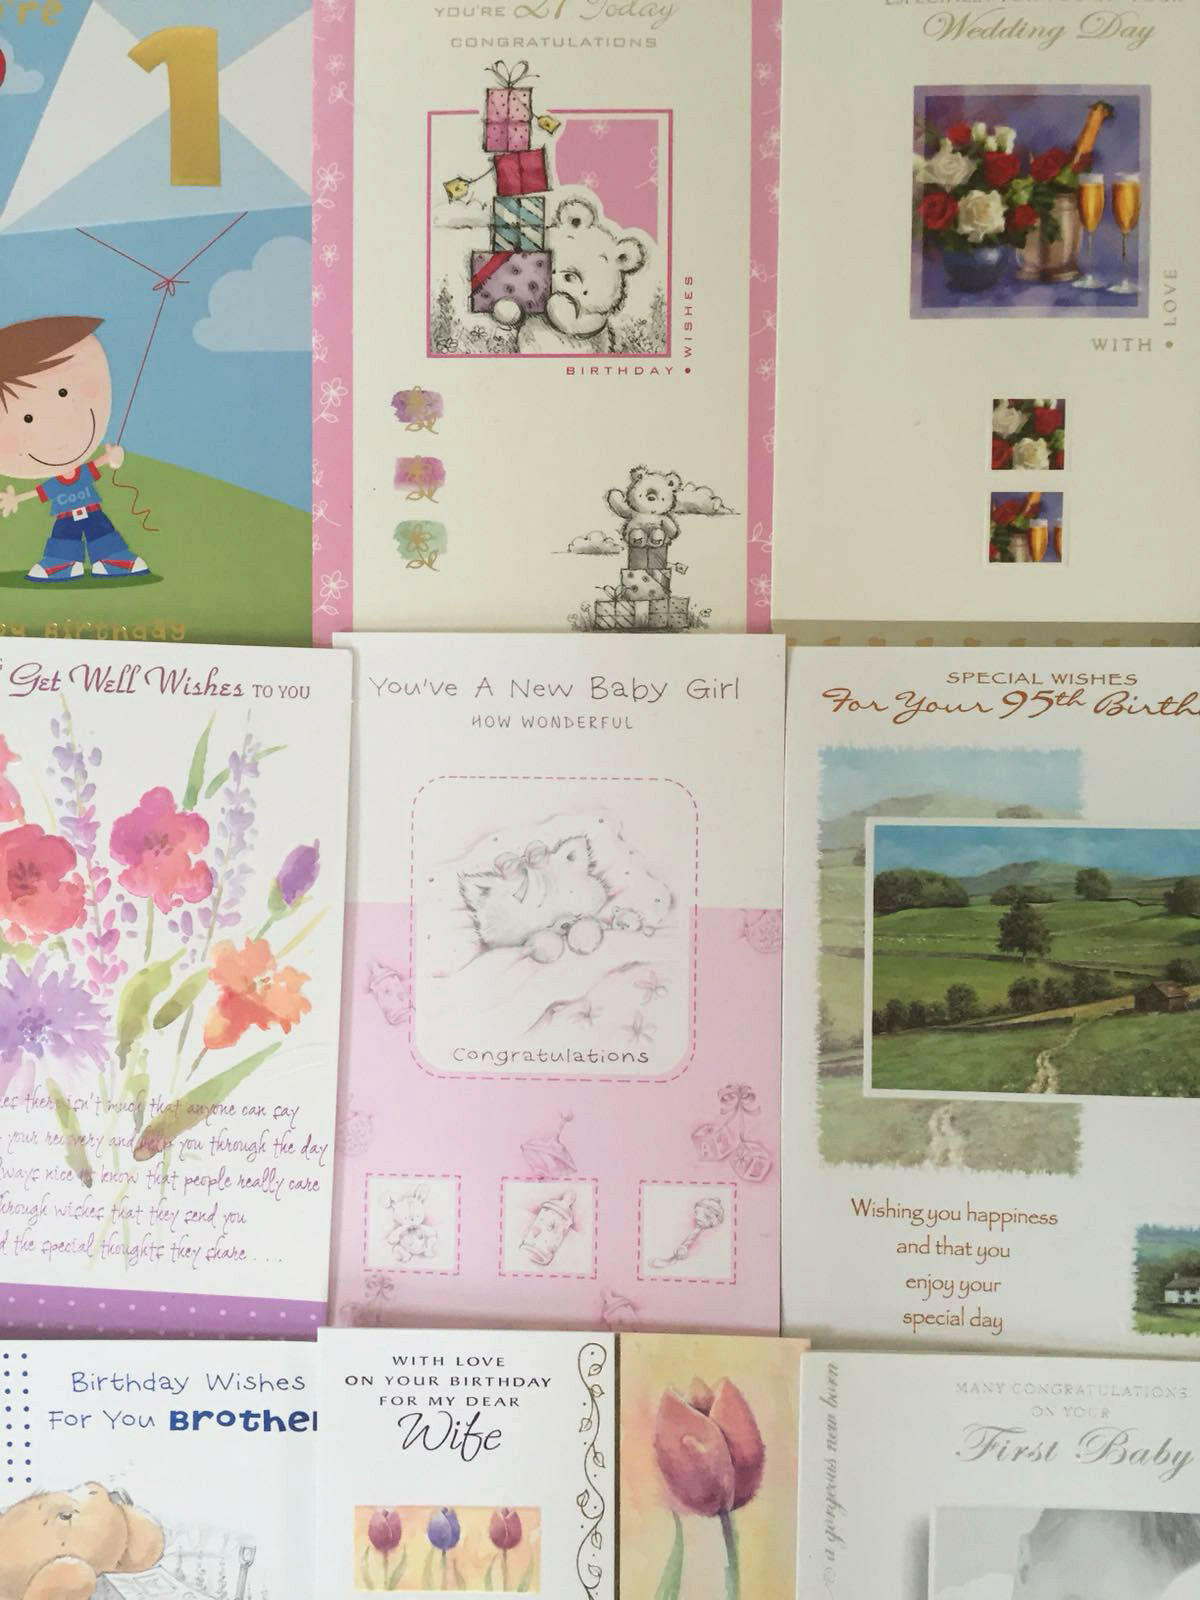 50 Greeting Cards Bargain Wholesale Job Lot Of Assorted Designs No